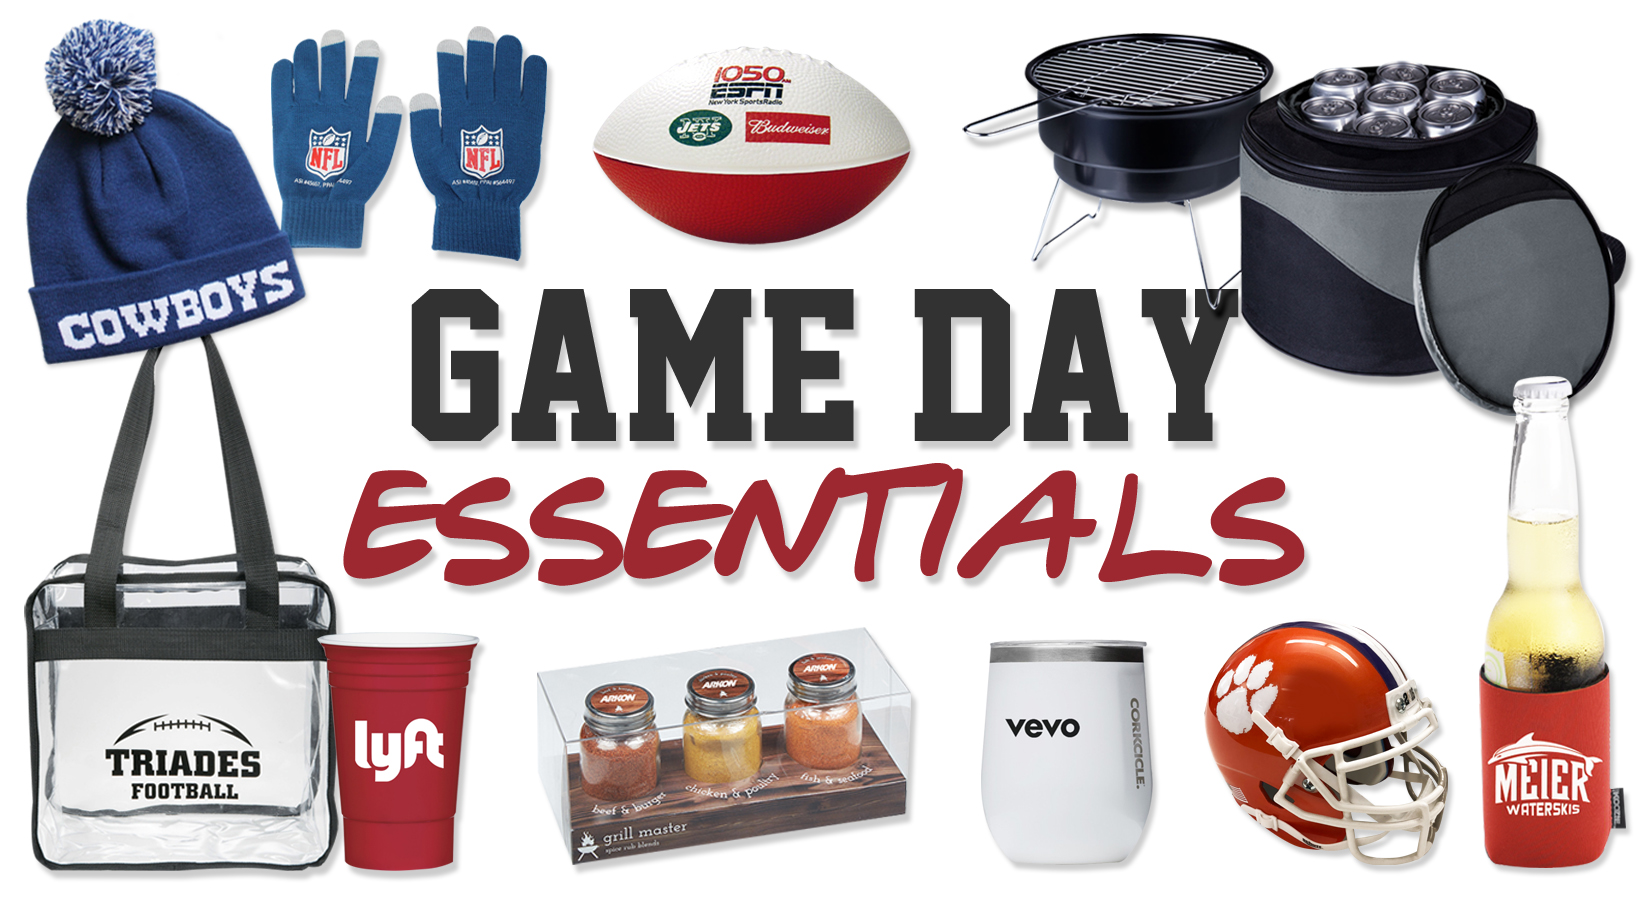 Our Top 10 Game Day Essentials